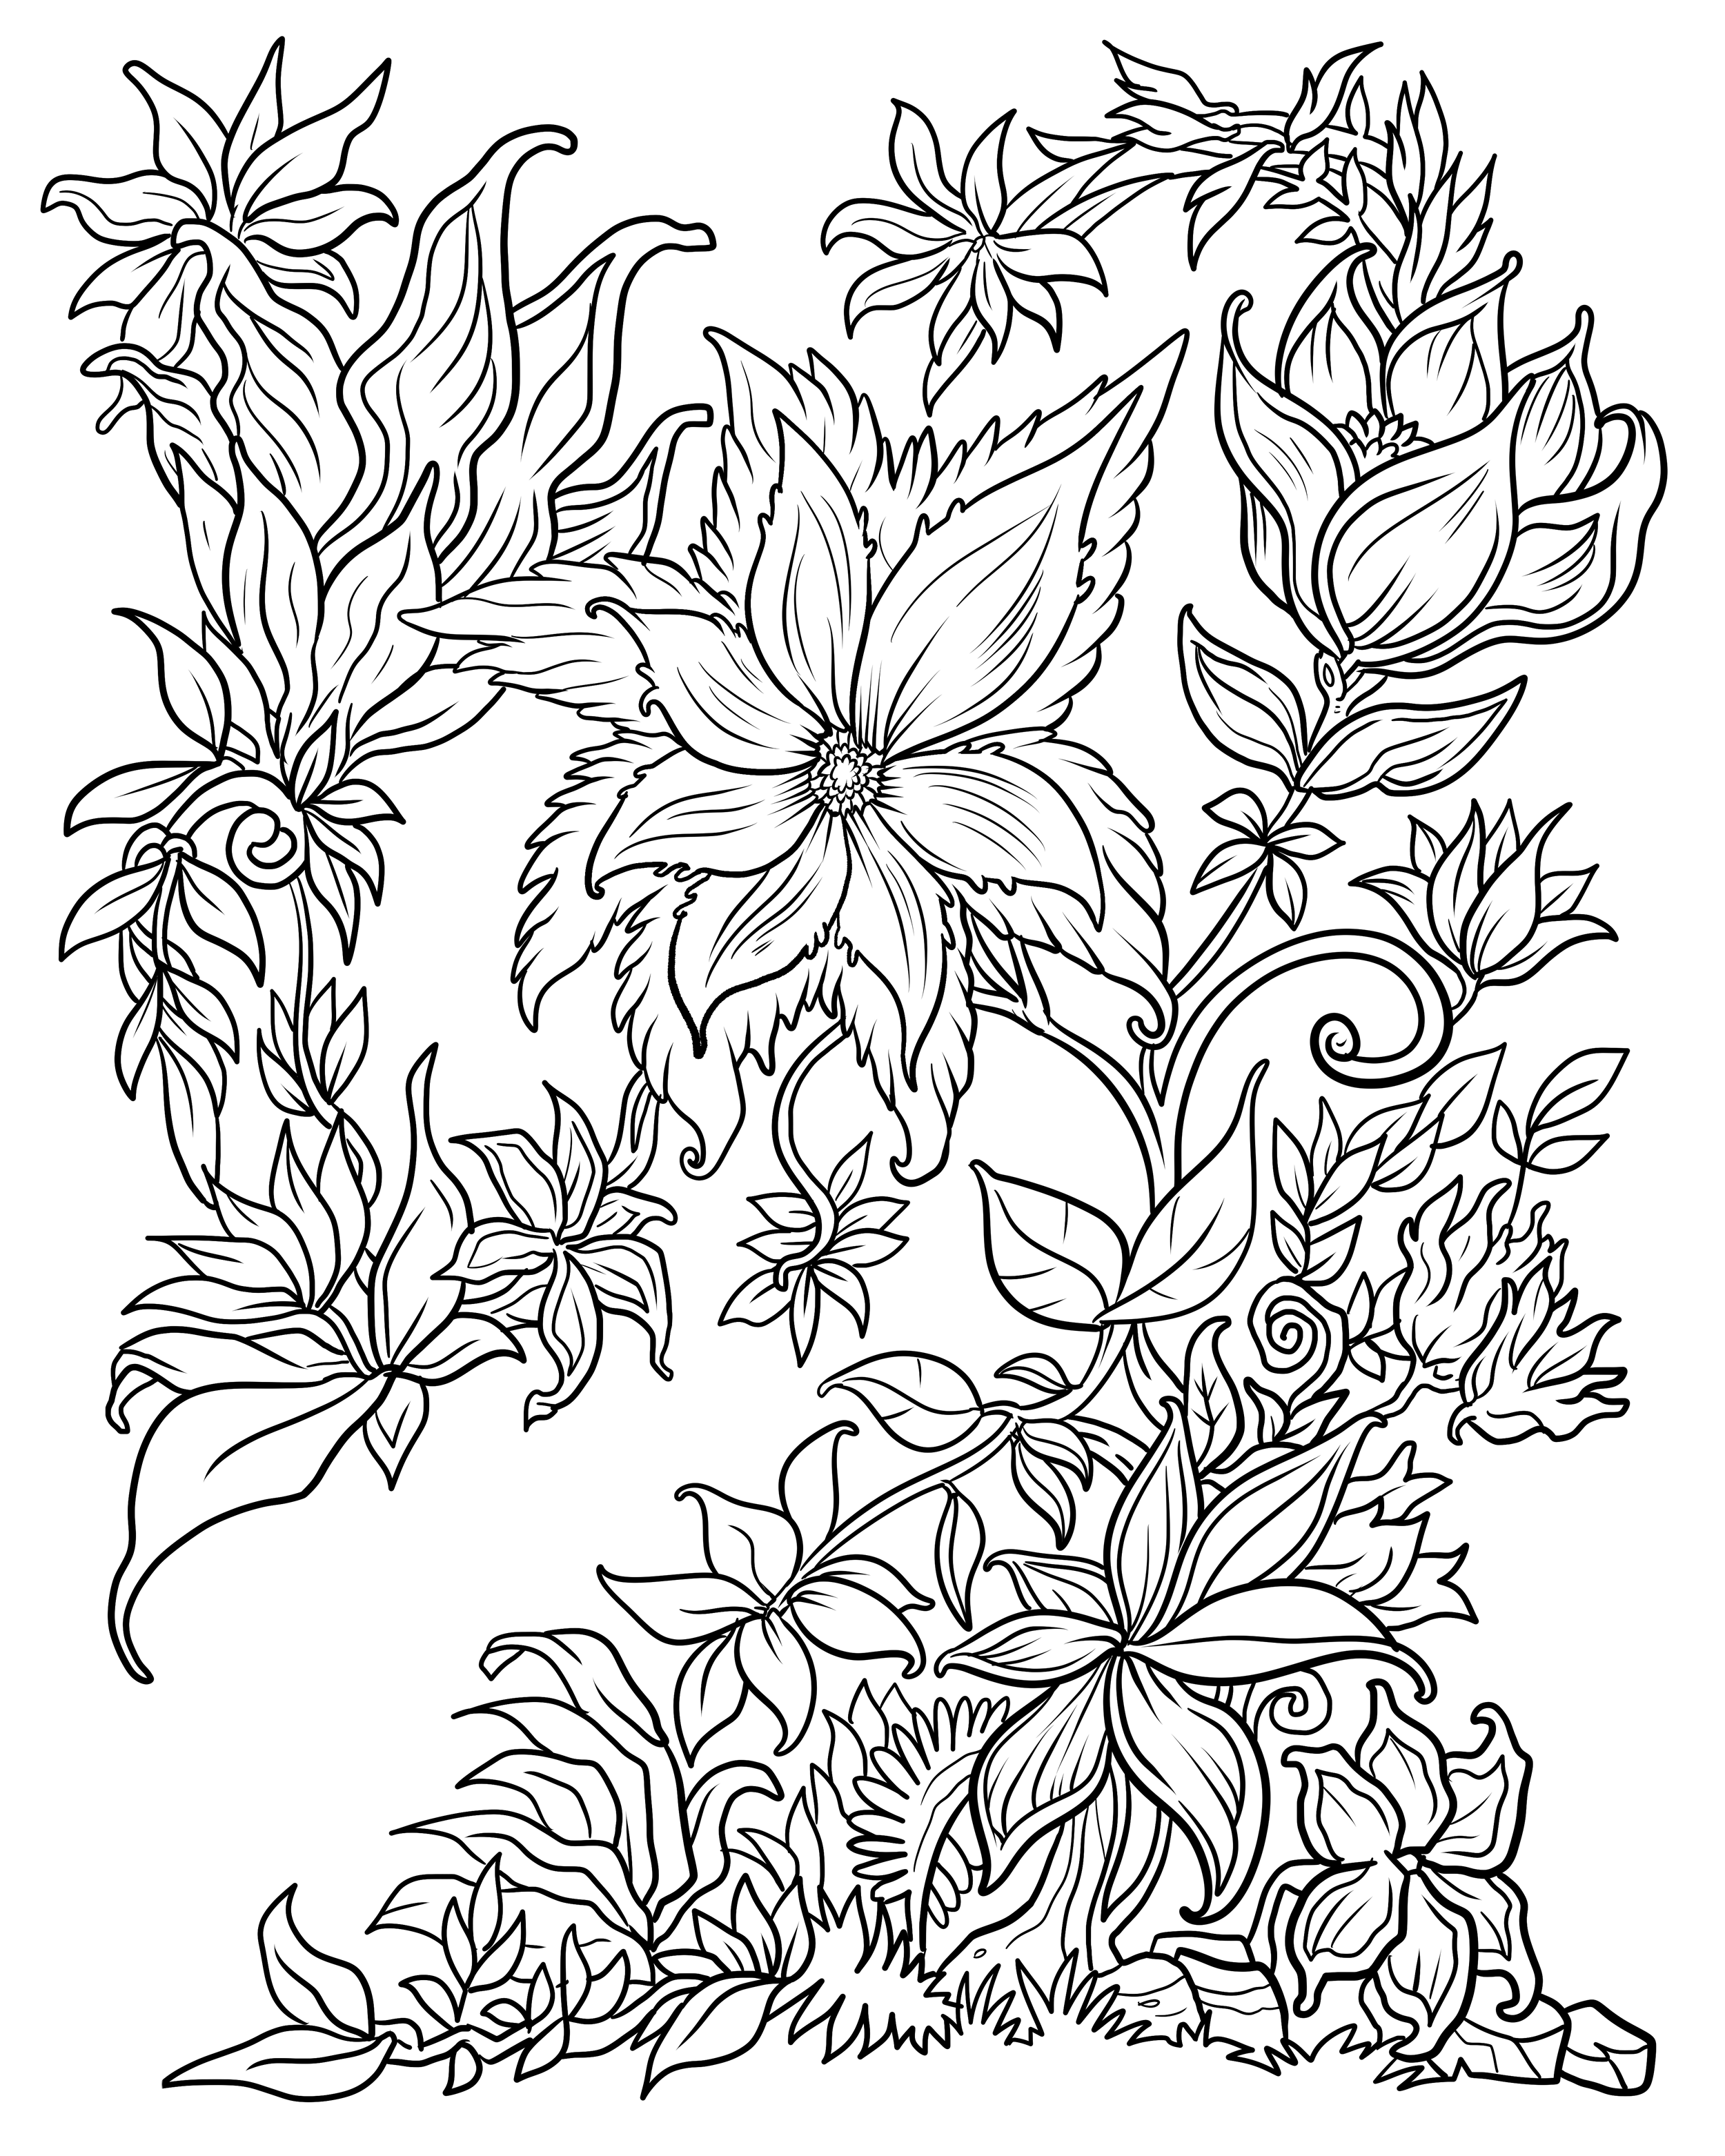 coloring sheet for adults 15 favorite free adult coloring pages diy candy sheet for adults coloring